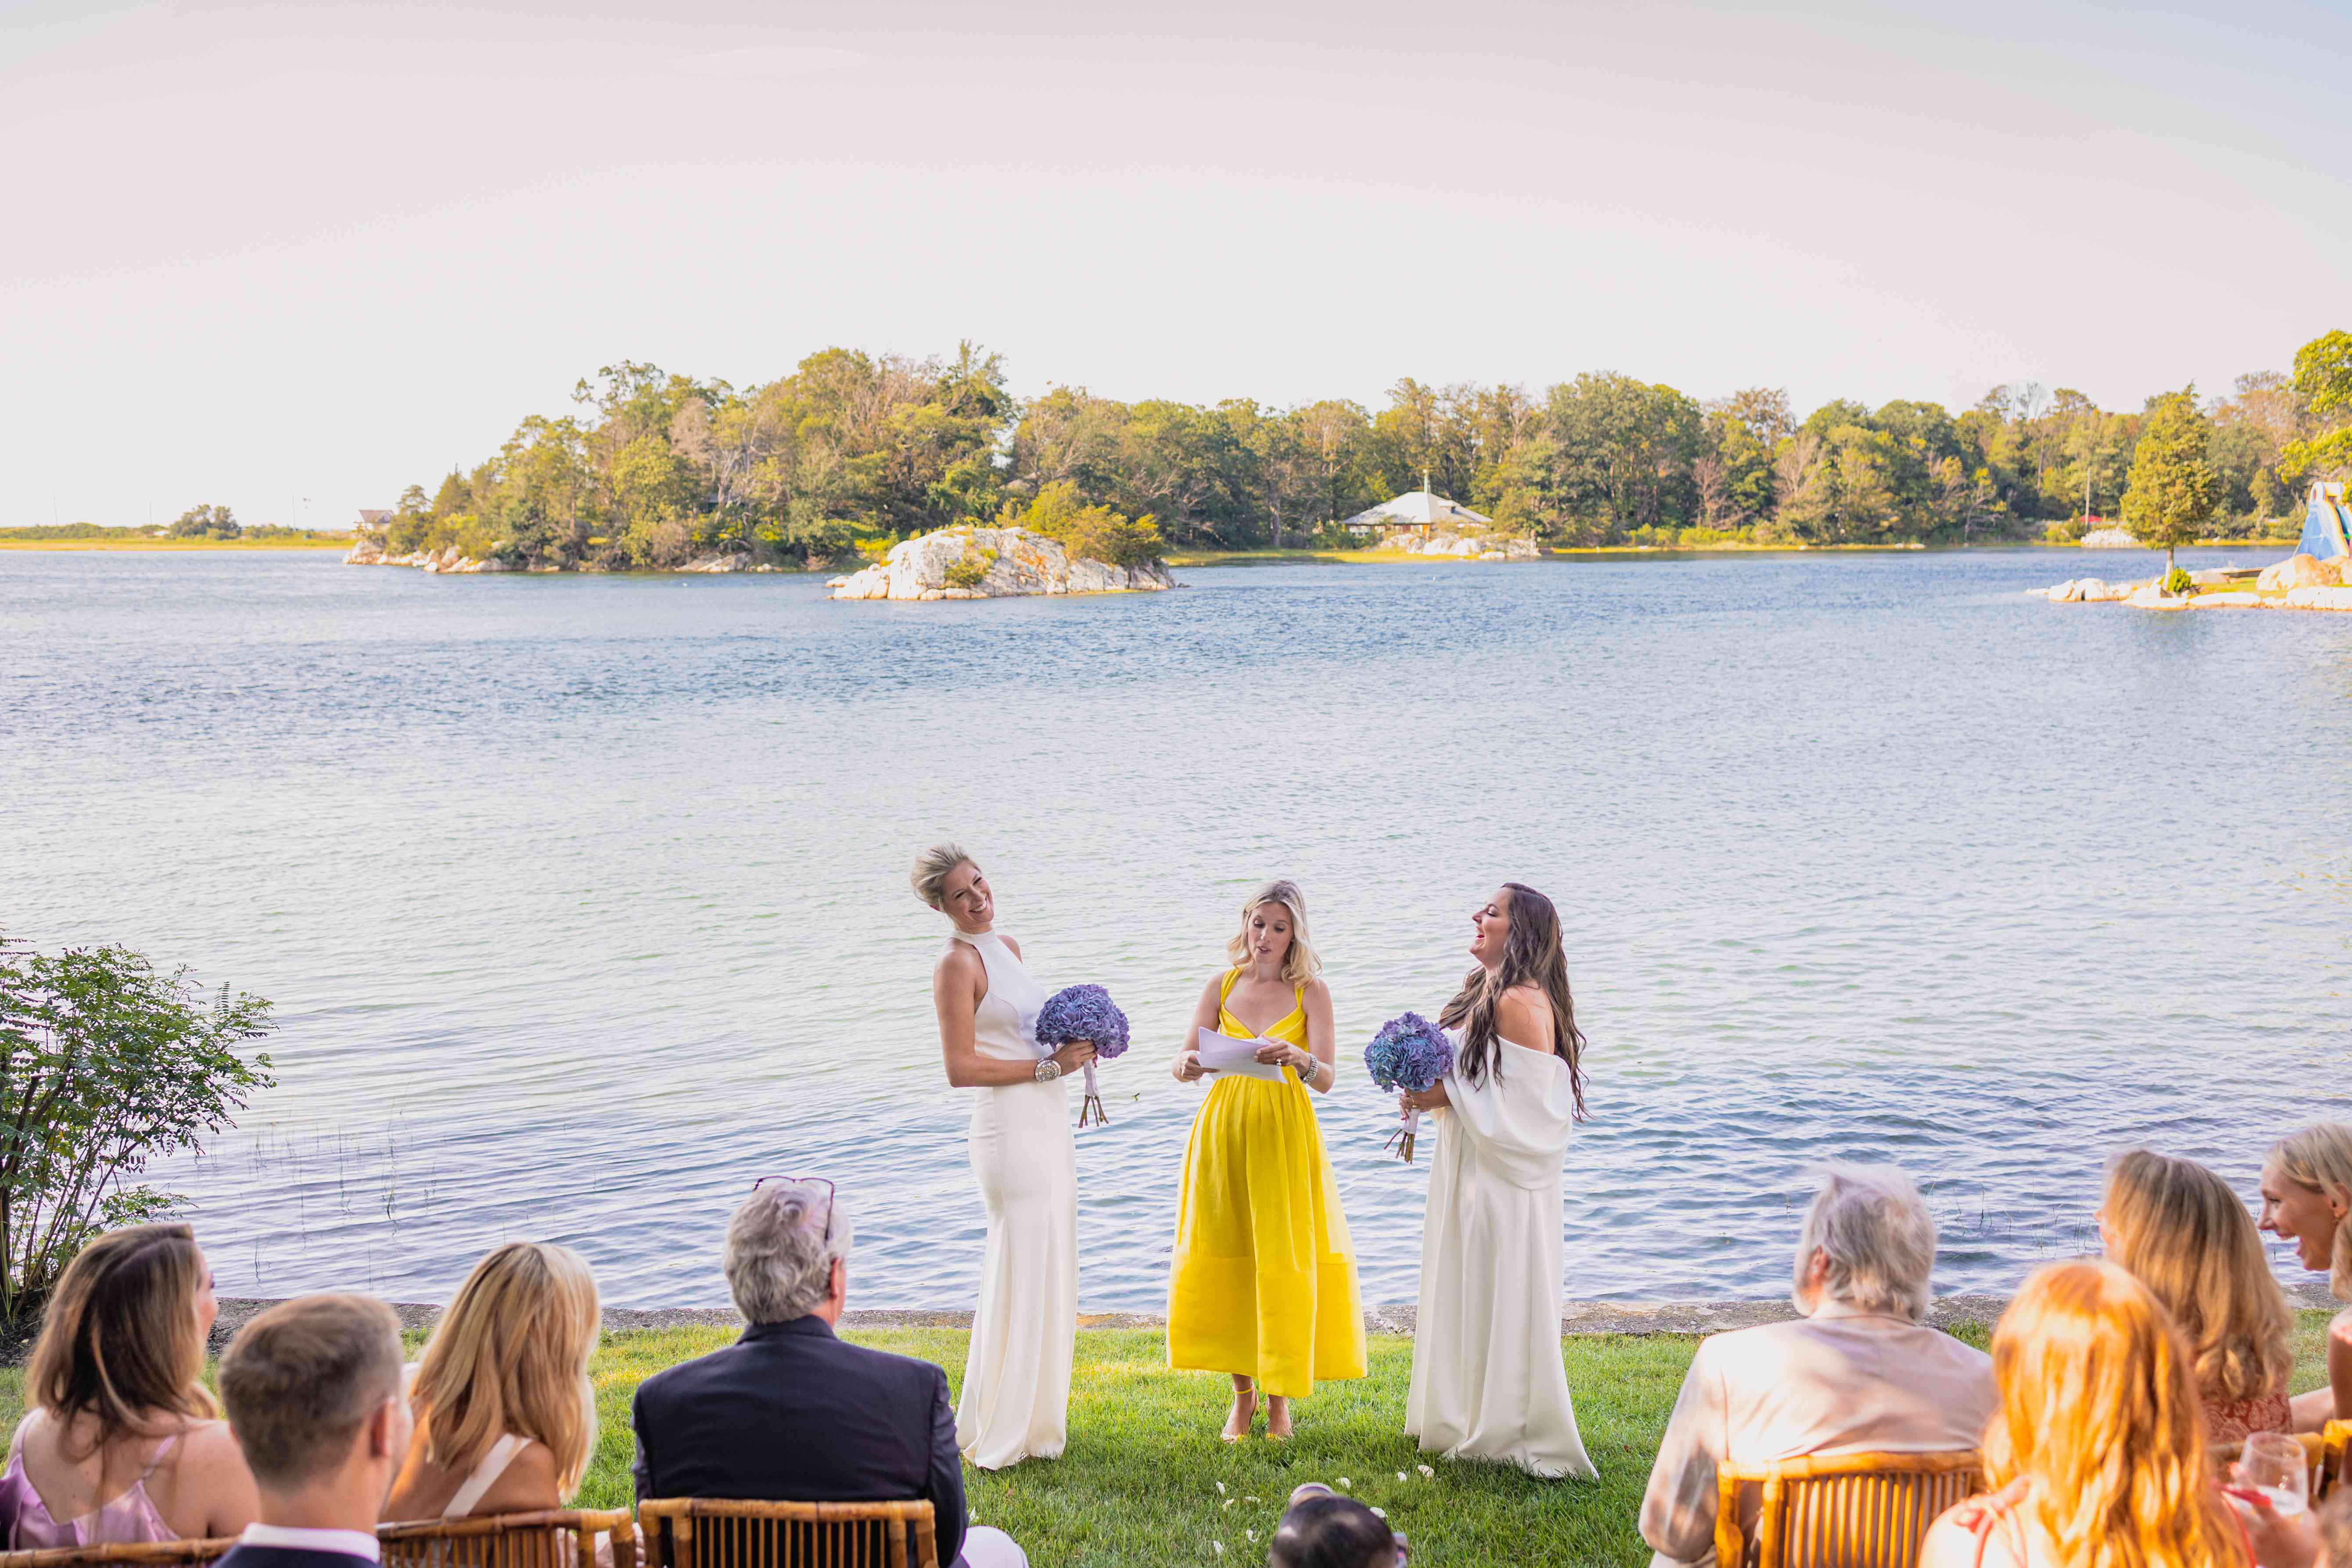 brides at ceremony on lake